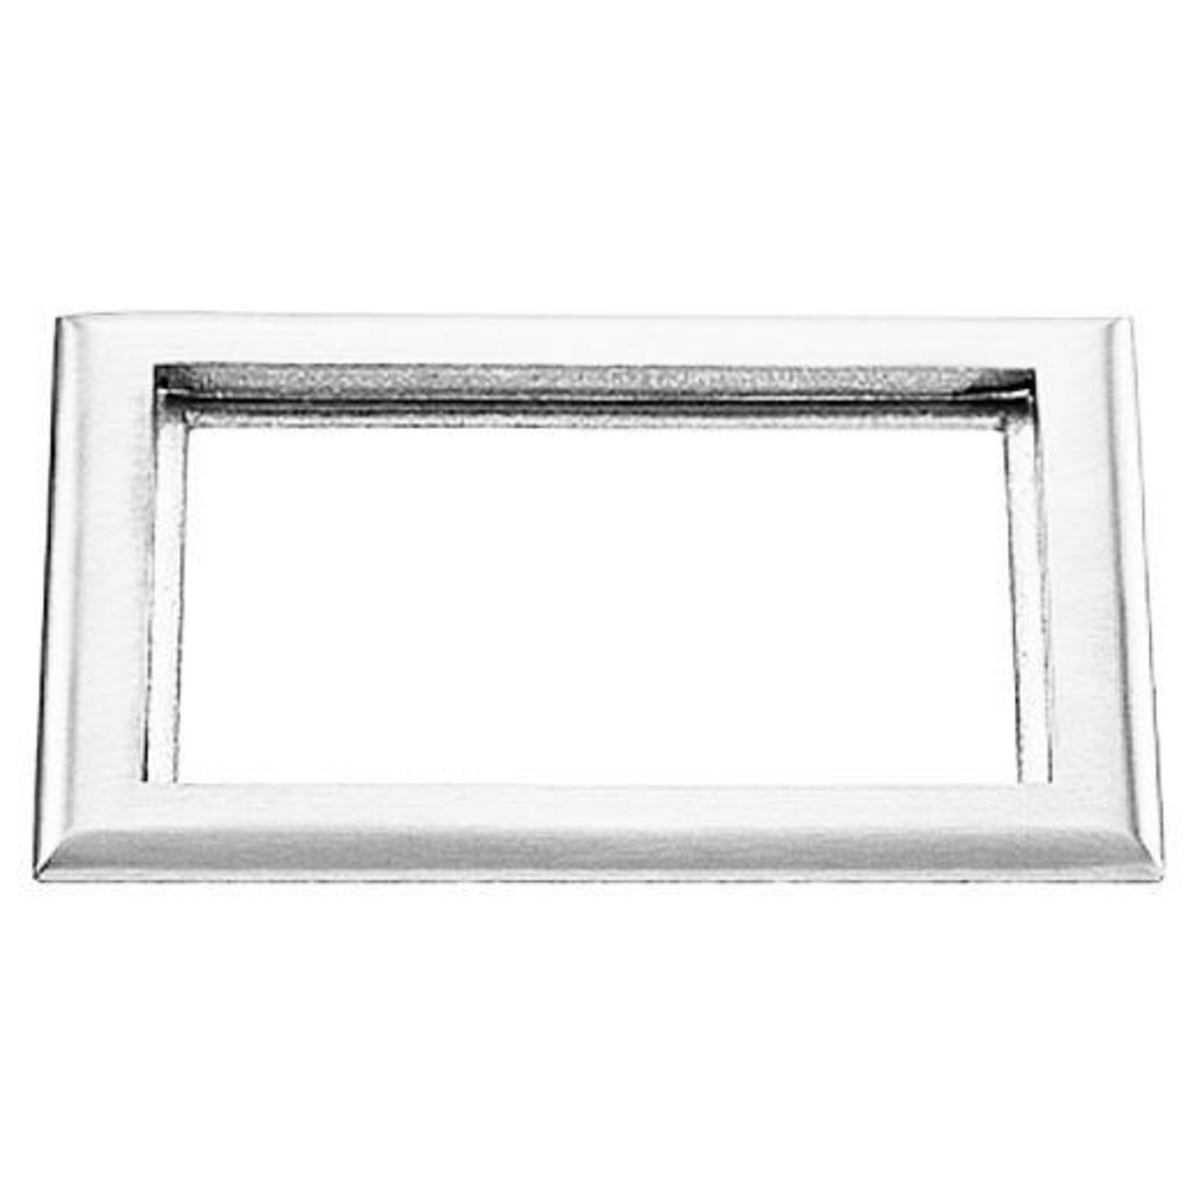 Hubbell S3084 2-Gang 6 x 8.13 Inch Clear Polycarbonate Rectangular Floor Box Carpet Flange